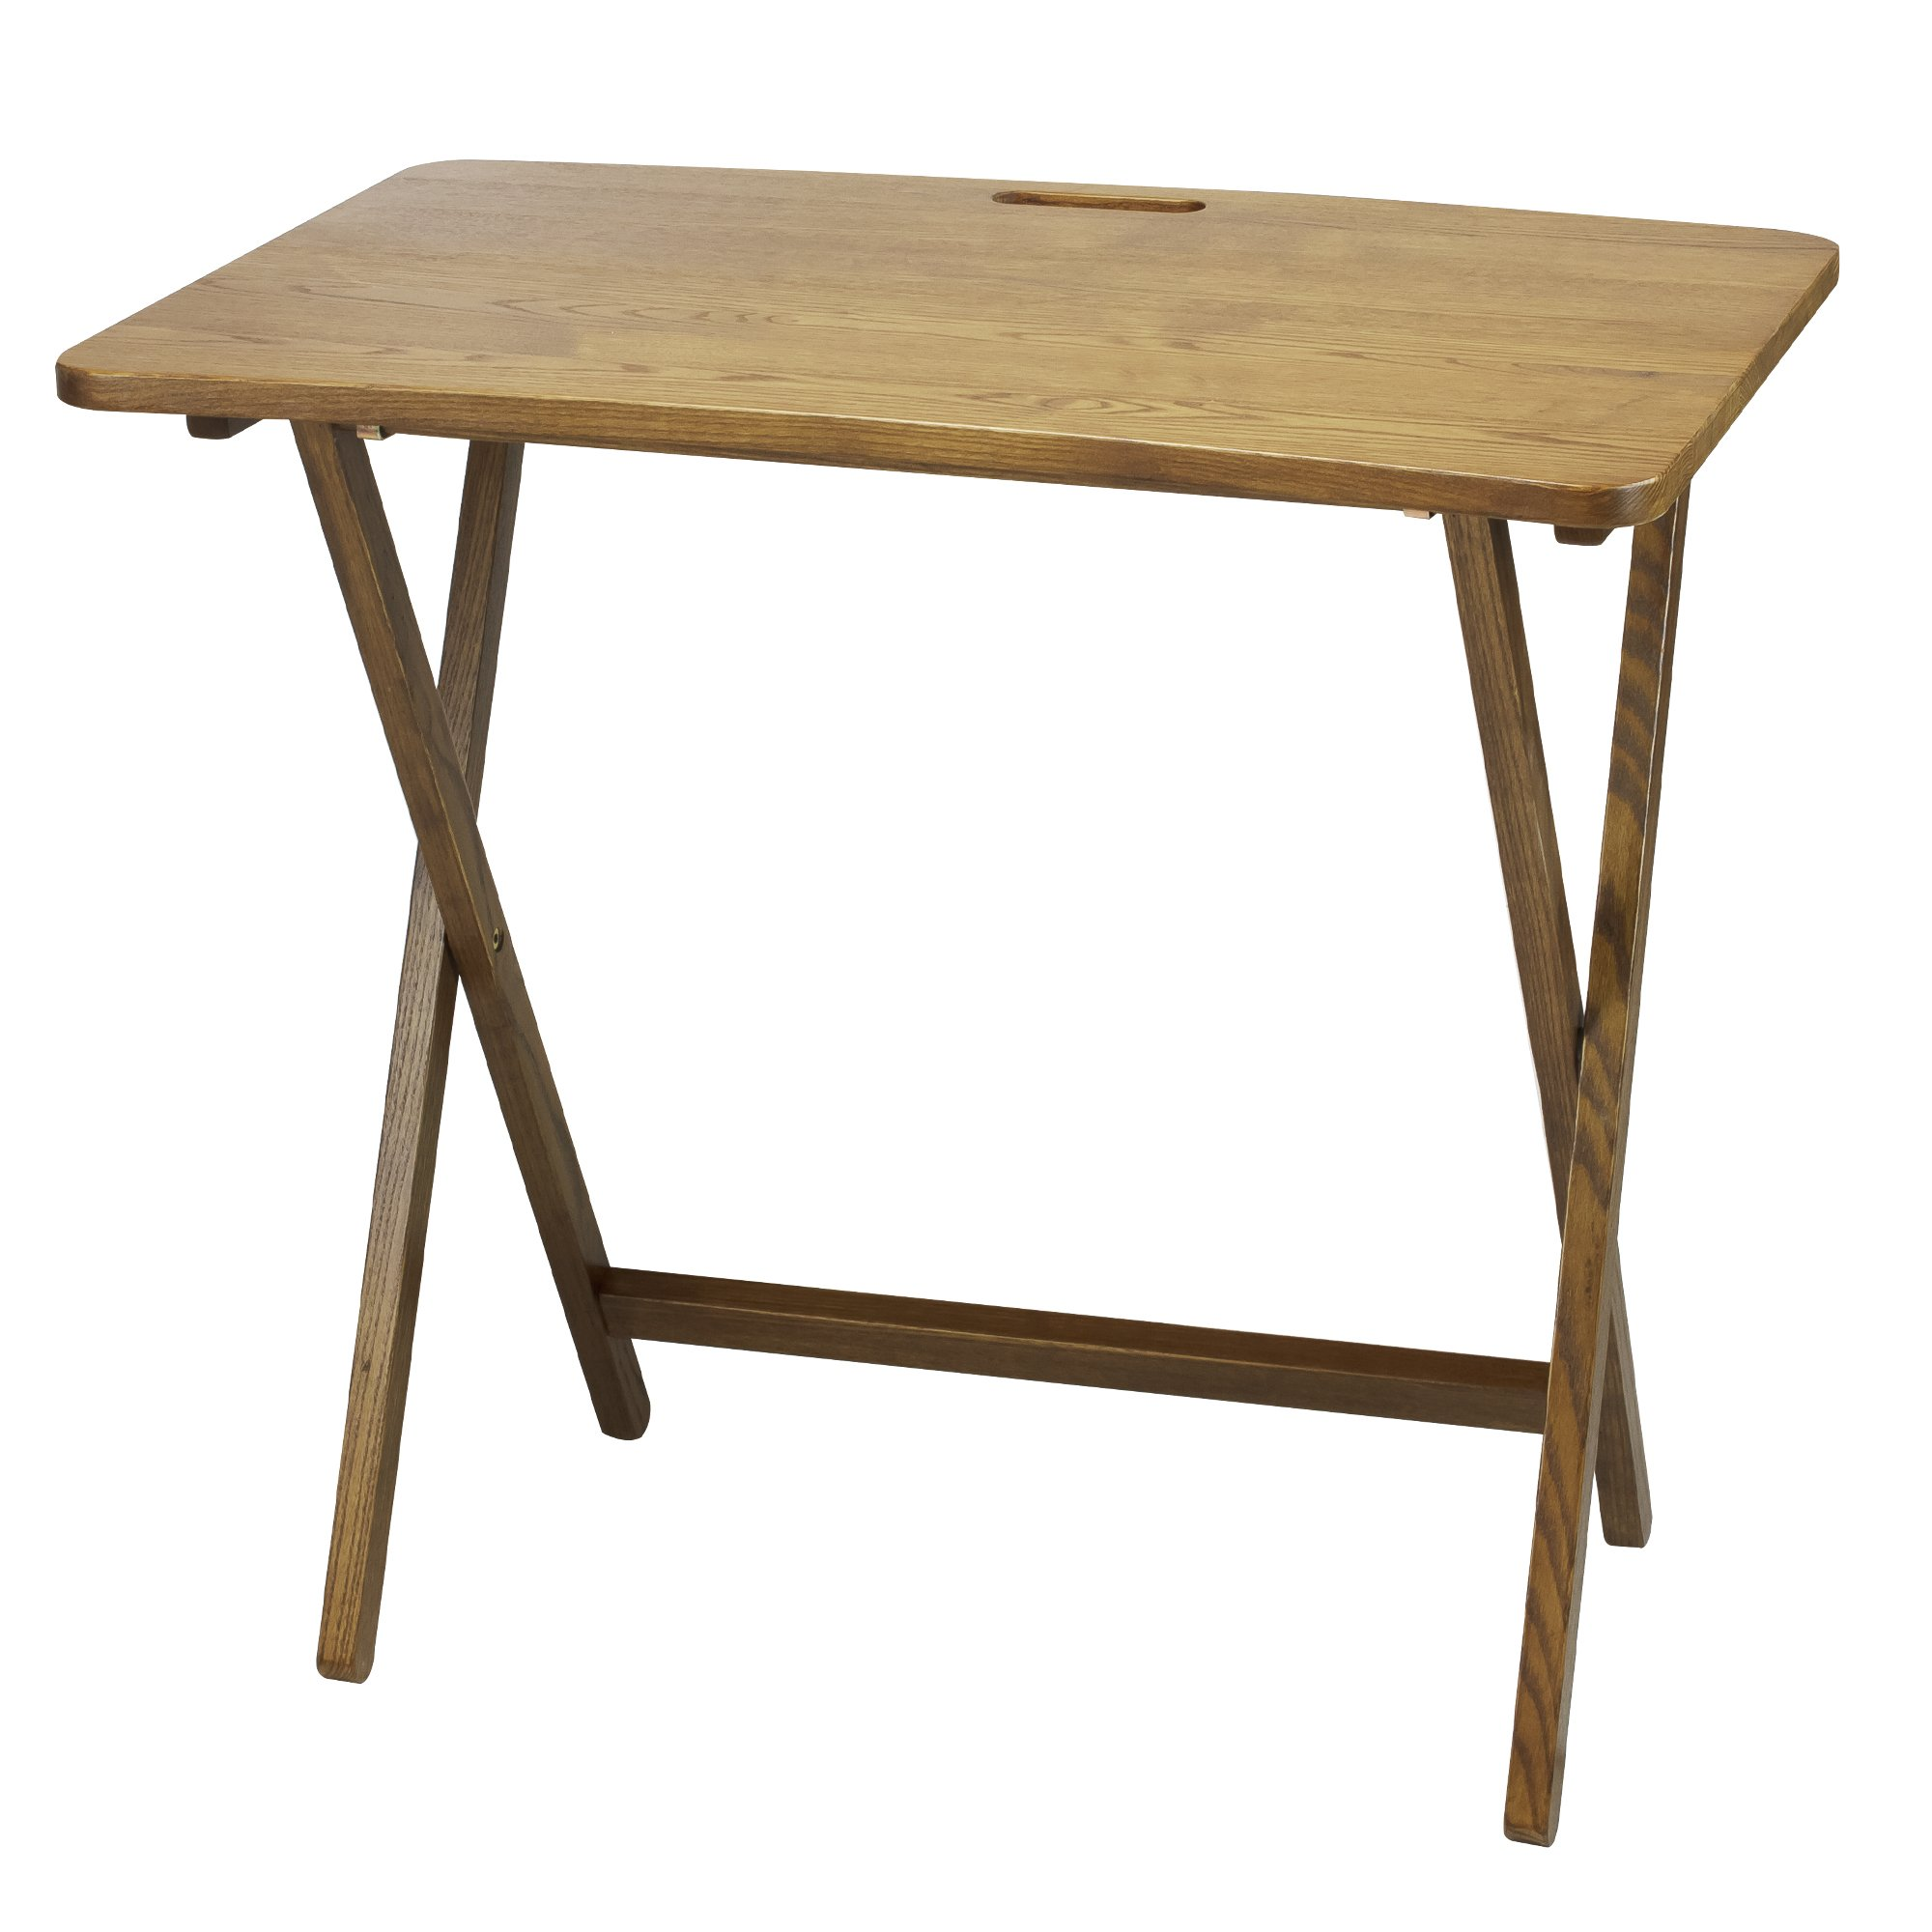 PRESTO PRODUCTS COMPANY American Trails Arizona Folding Table with Solid Red Oak by PRESTO PRODUCTS COMPANY